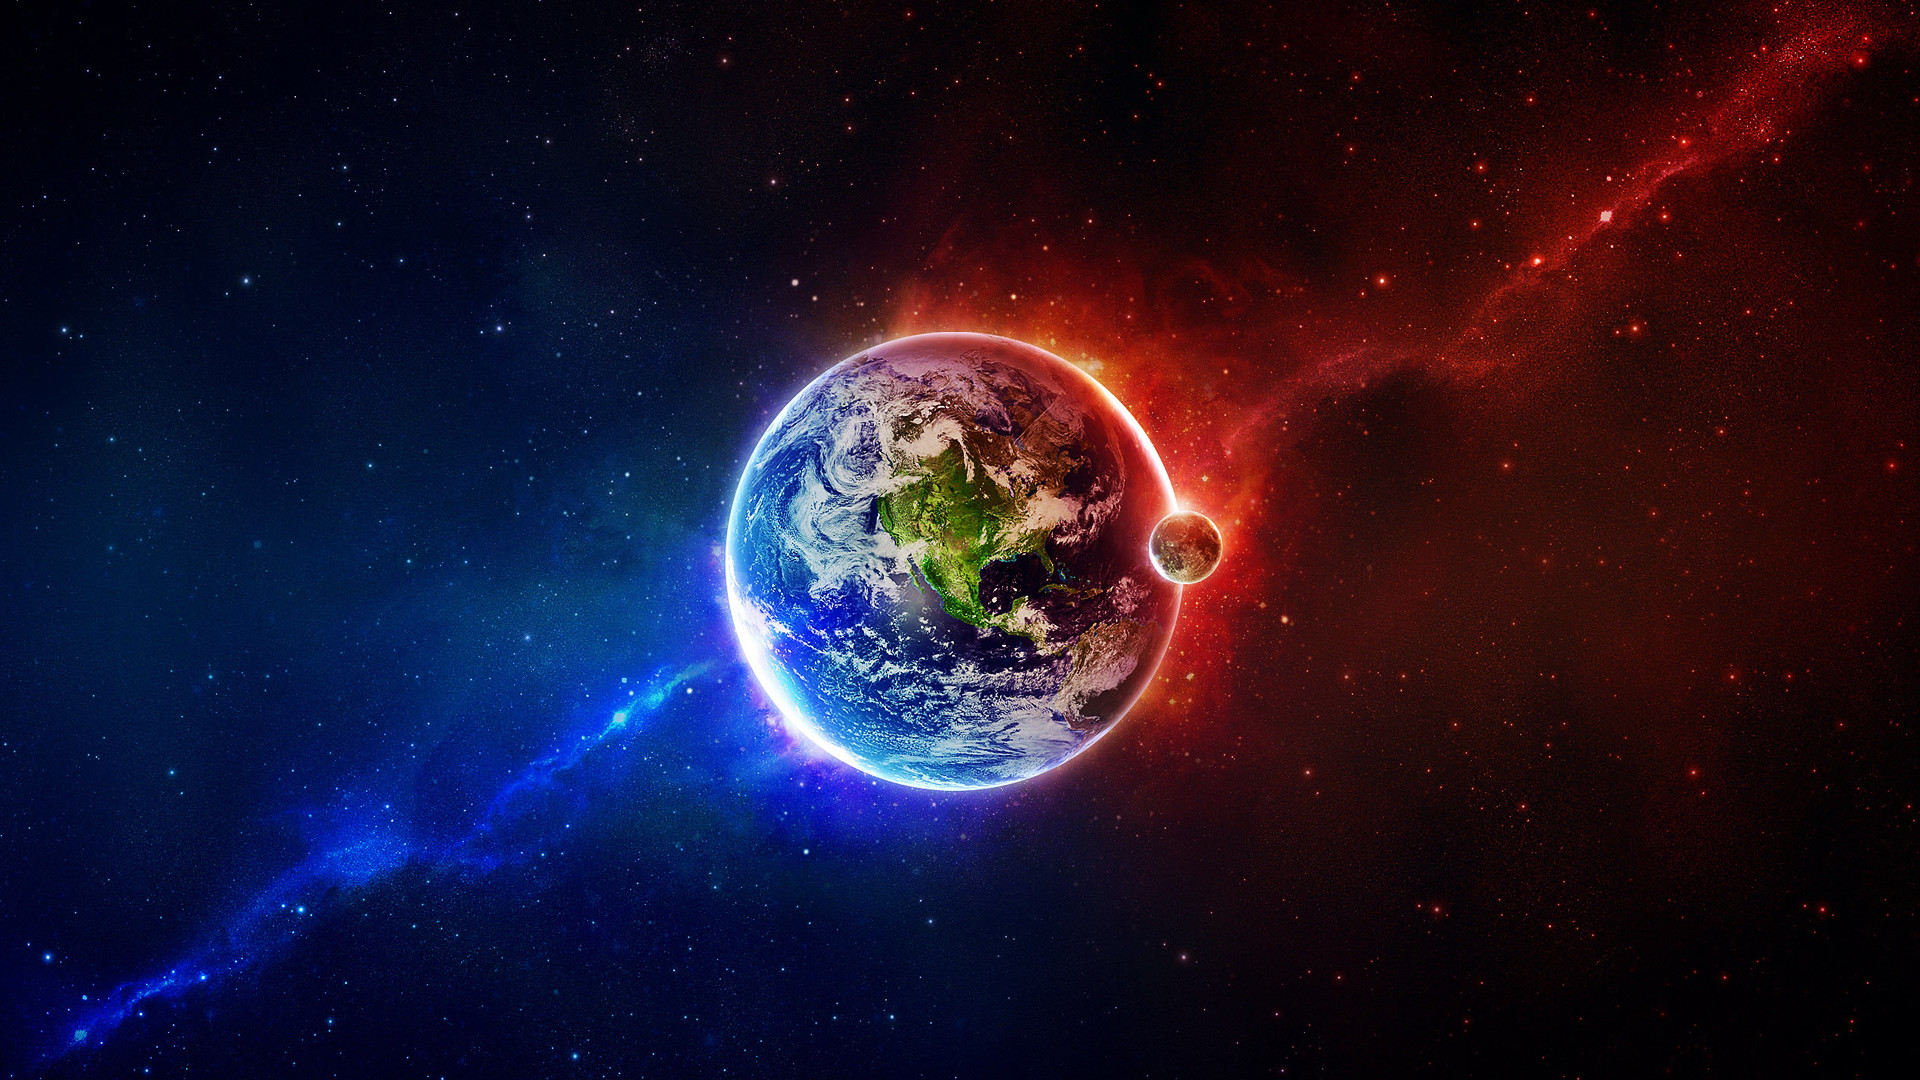 1920x1080 Wallpaper Earth Planet Space